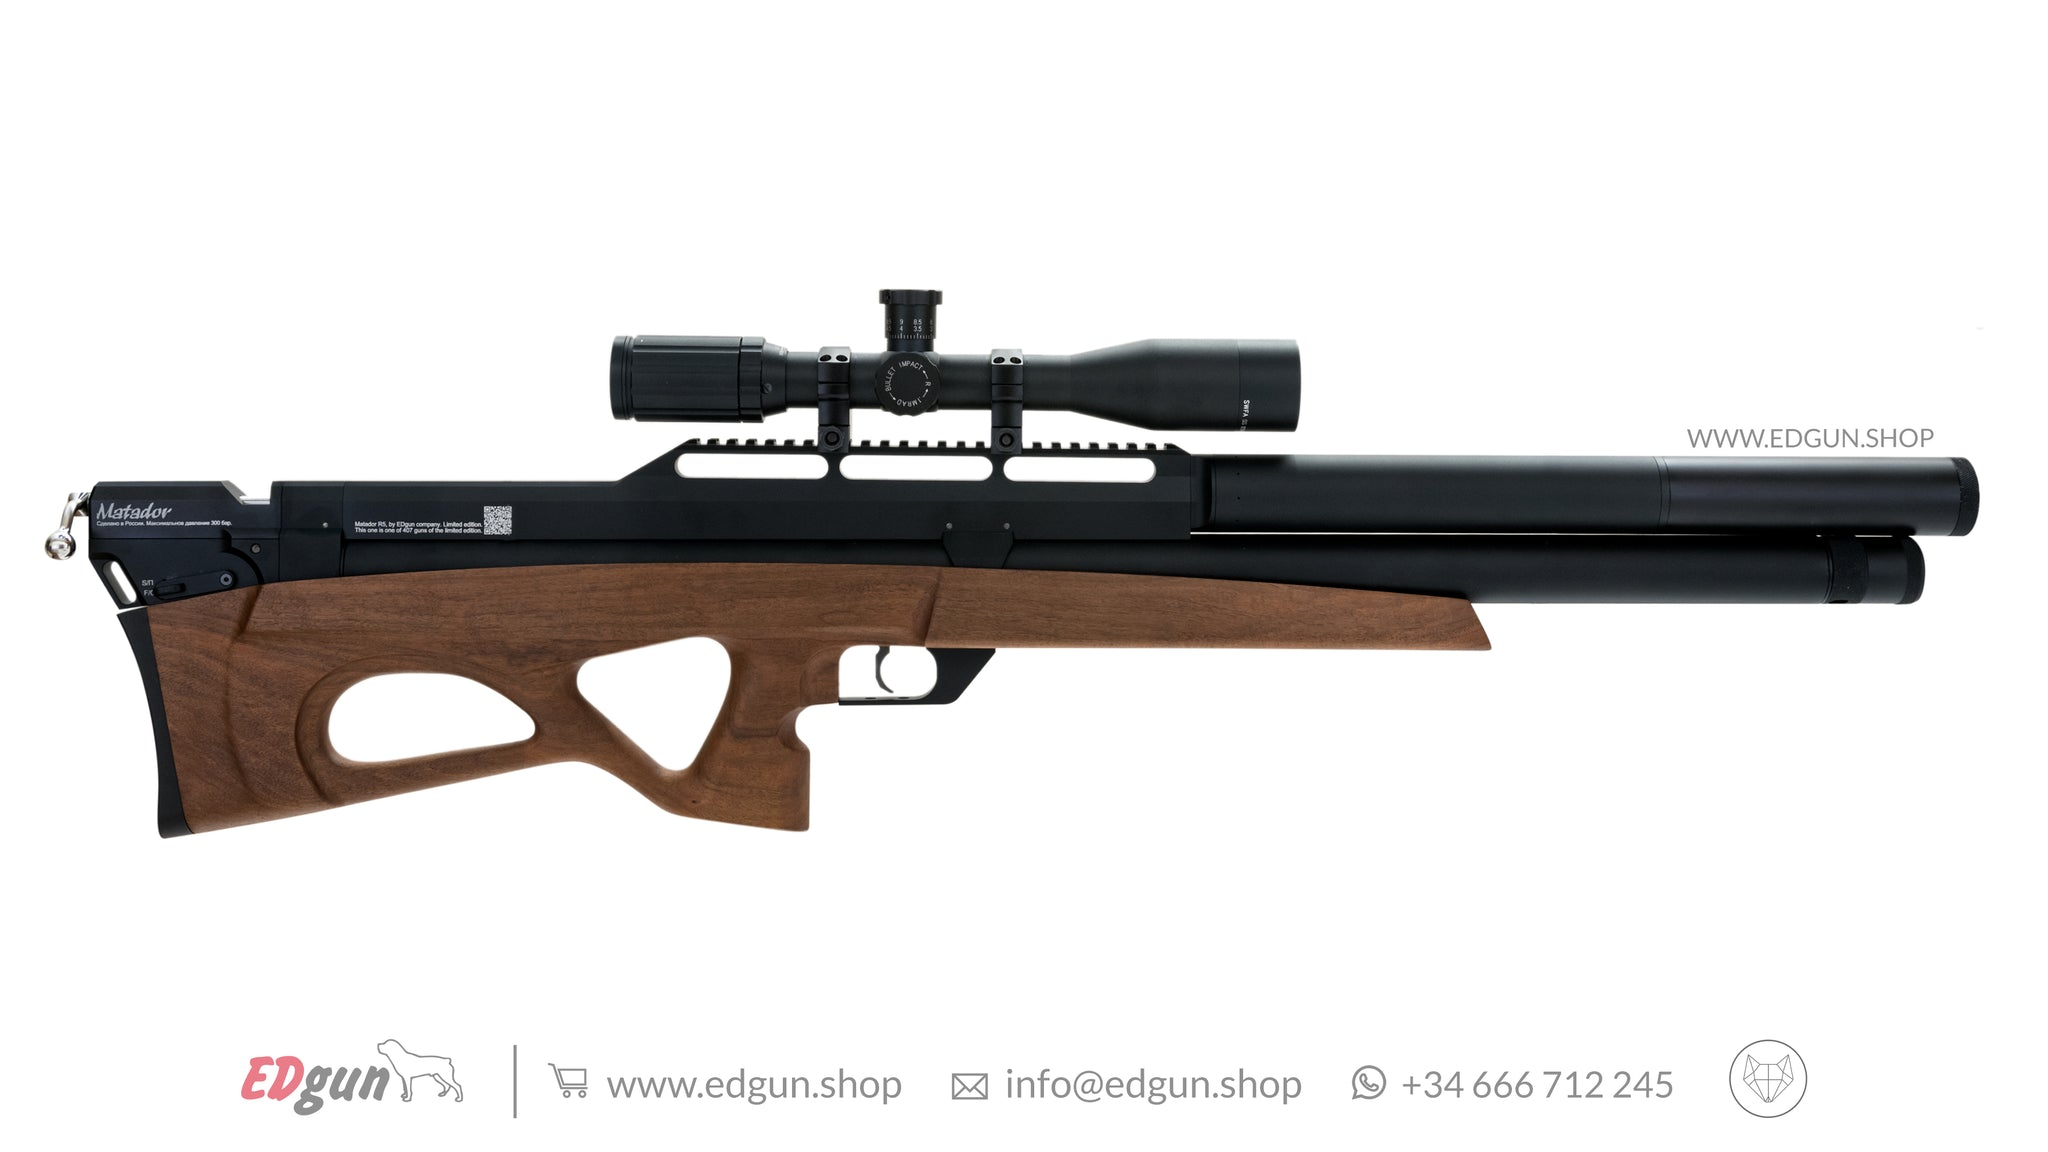 EDgun Matador R5 <br>Limited Edition Super Long